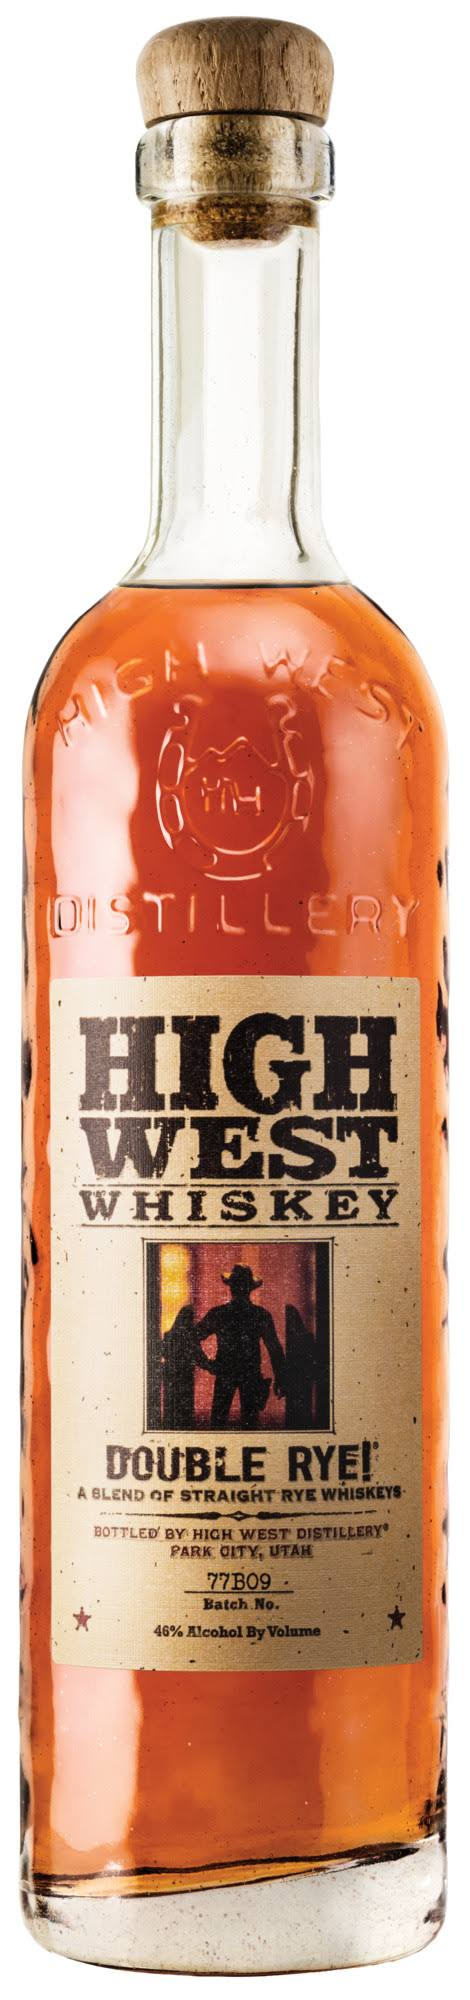 High West Whiskey, Double Rye - 750 ml